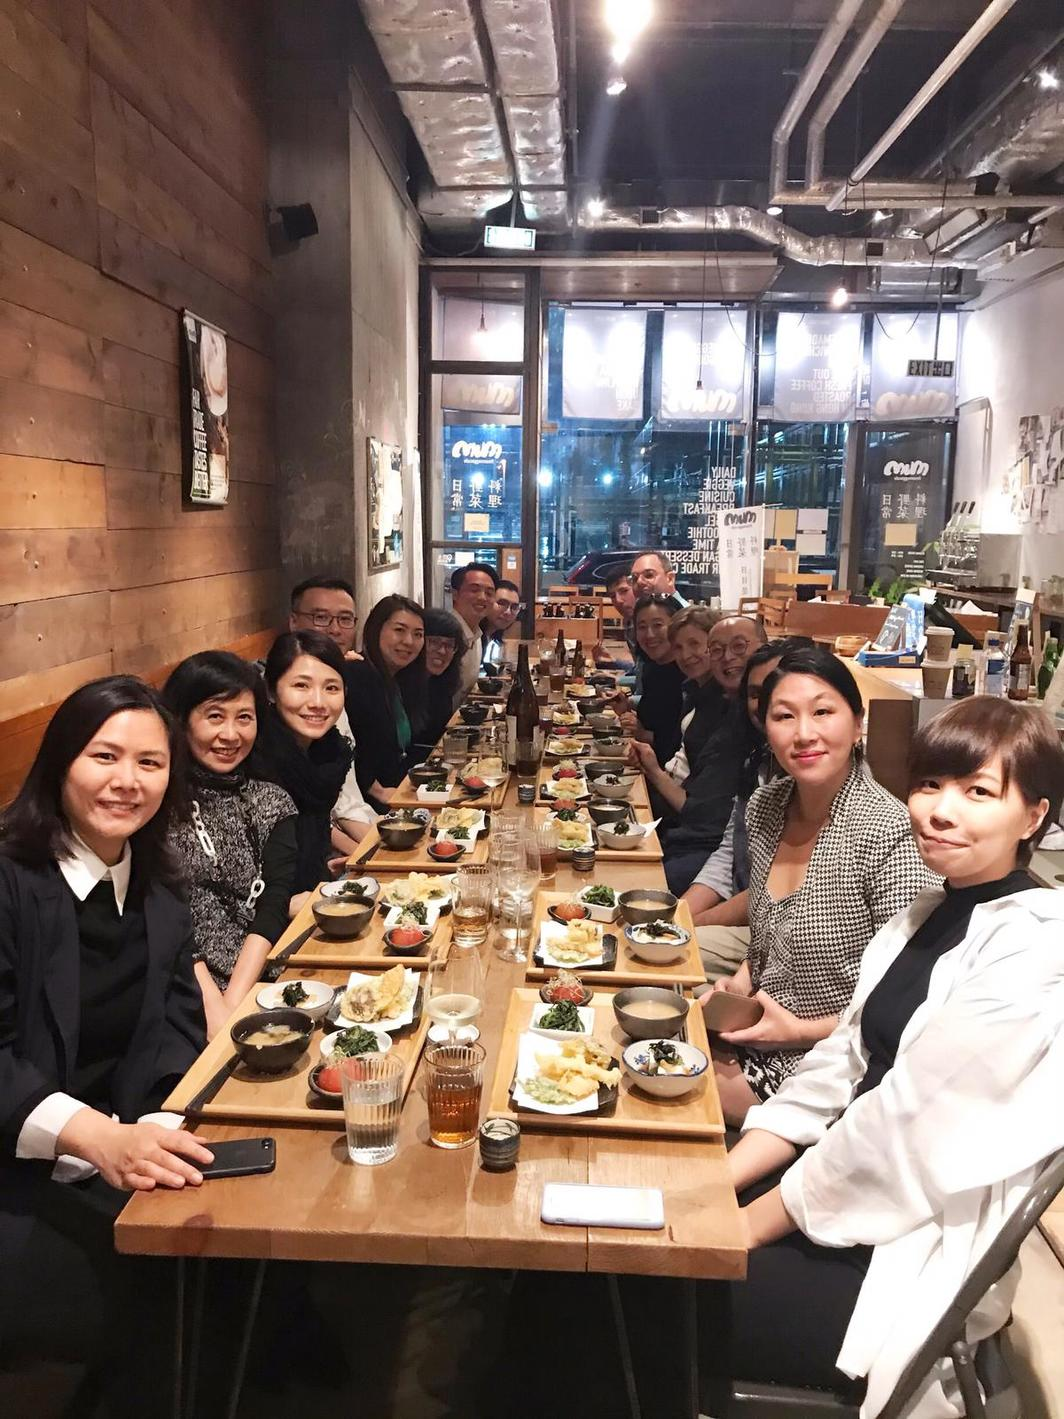 Dinner for the opening of Lam Tung Pang's exhibition at Blindspot Gallery. Left, from front to back:  Lesley Kwok, Vita Wong, Mimi Chun, David Chan, Susanna Chung, Tina Pang, Nick Yu, and Sim Chan. Right, from front to back: Leung Wing Yee, Yuk King Tan, Alpesh Kantilal Patel, Lam Tung Pang, Jane DeBevoise, Abby Chen, Tobias Berger, and Chris Gradel.